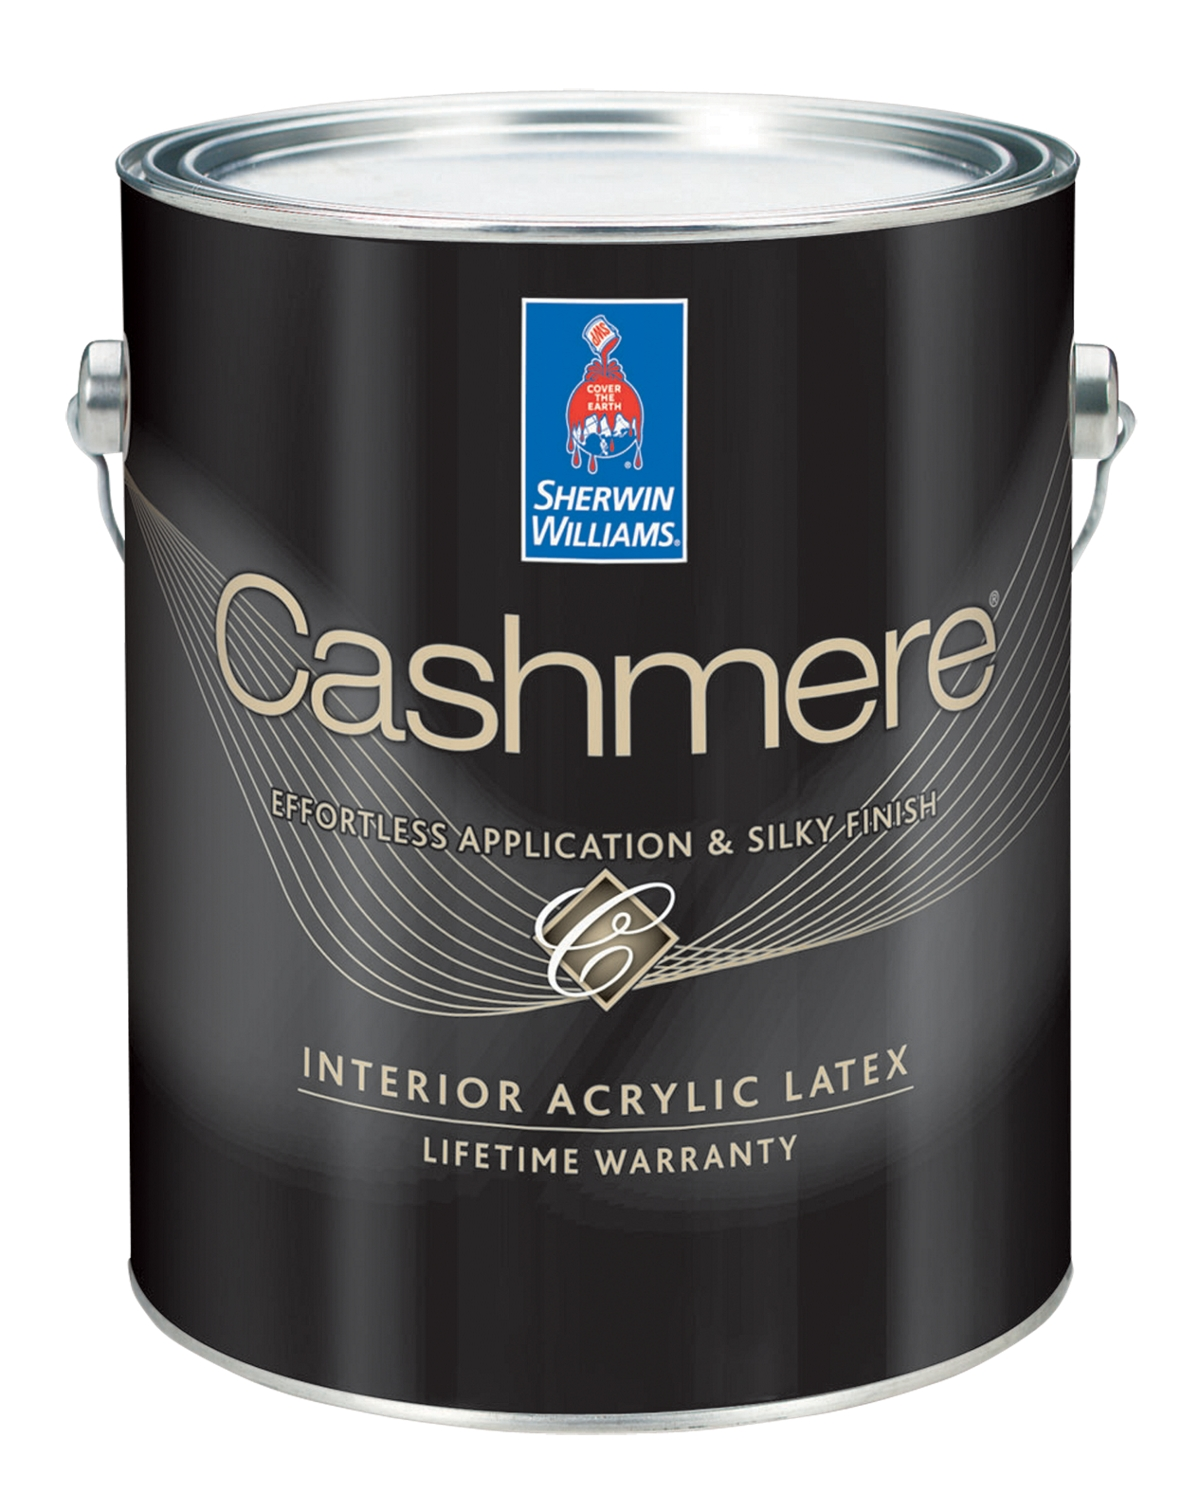 Cashmere® Interior Acrylic Latex